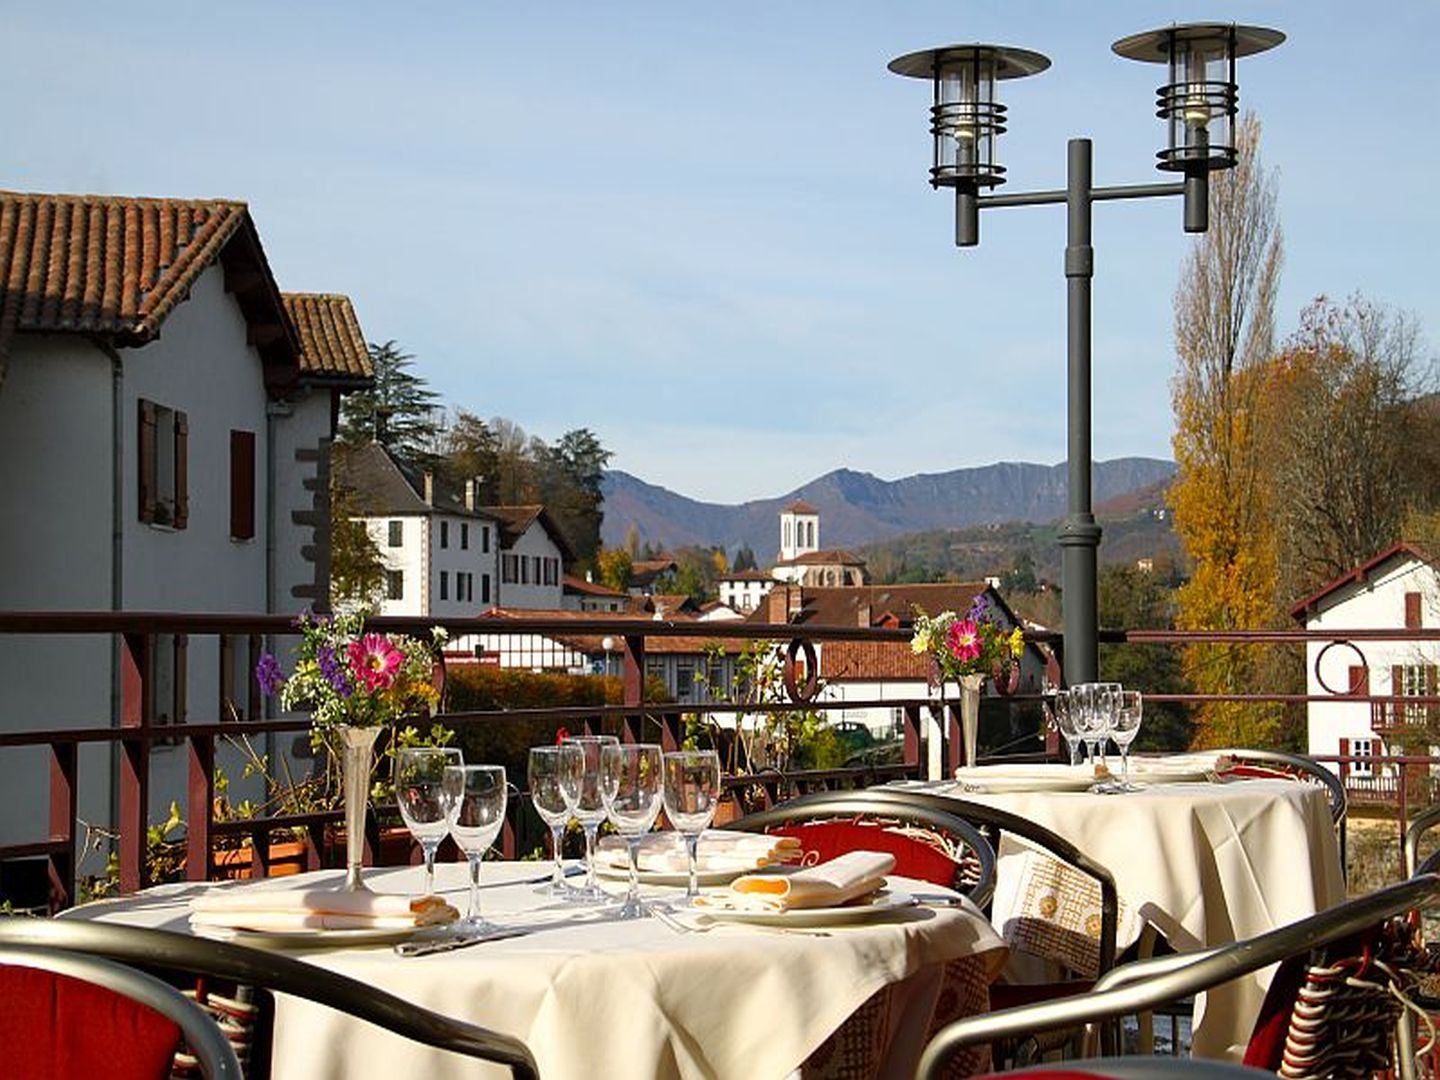 Restaurant le central saint jean pied de port 64 for Camping st jean pied de port avec piscine